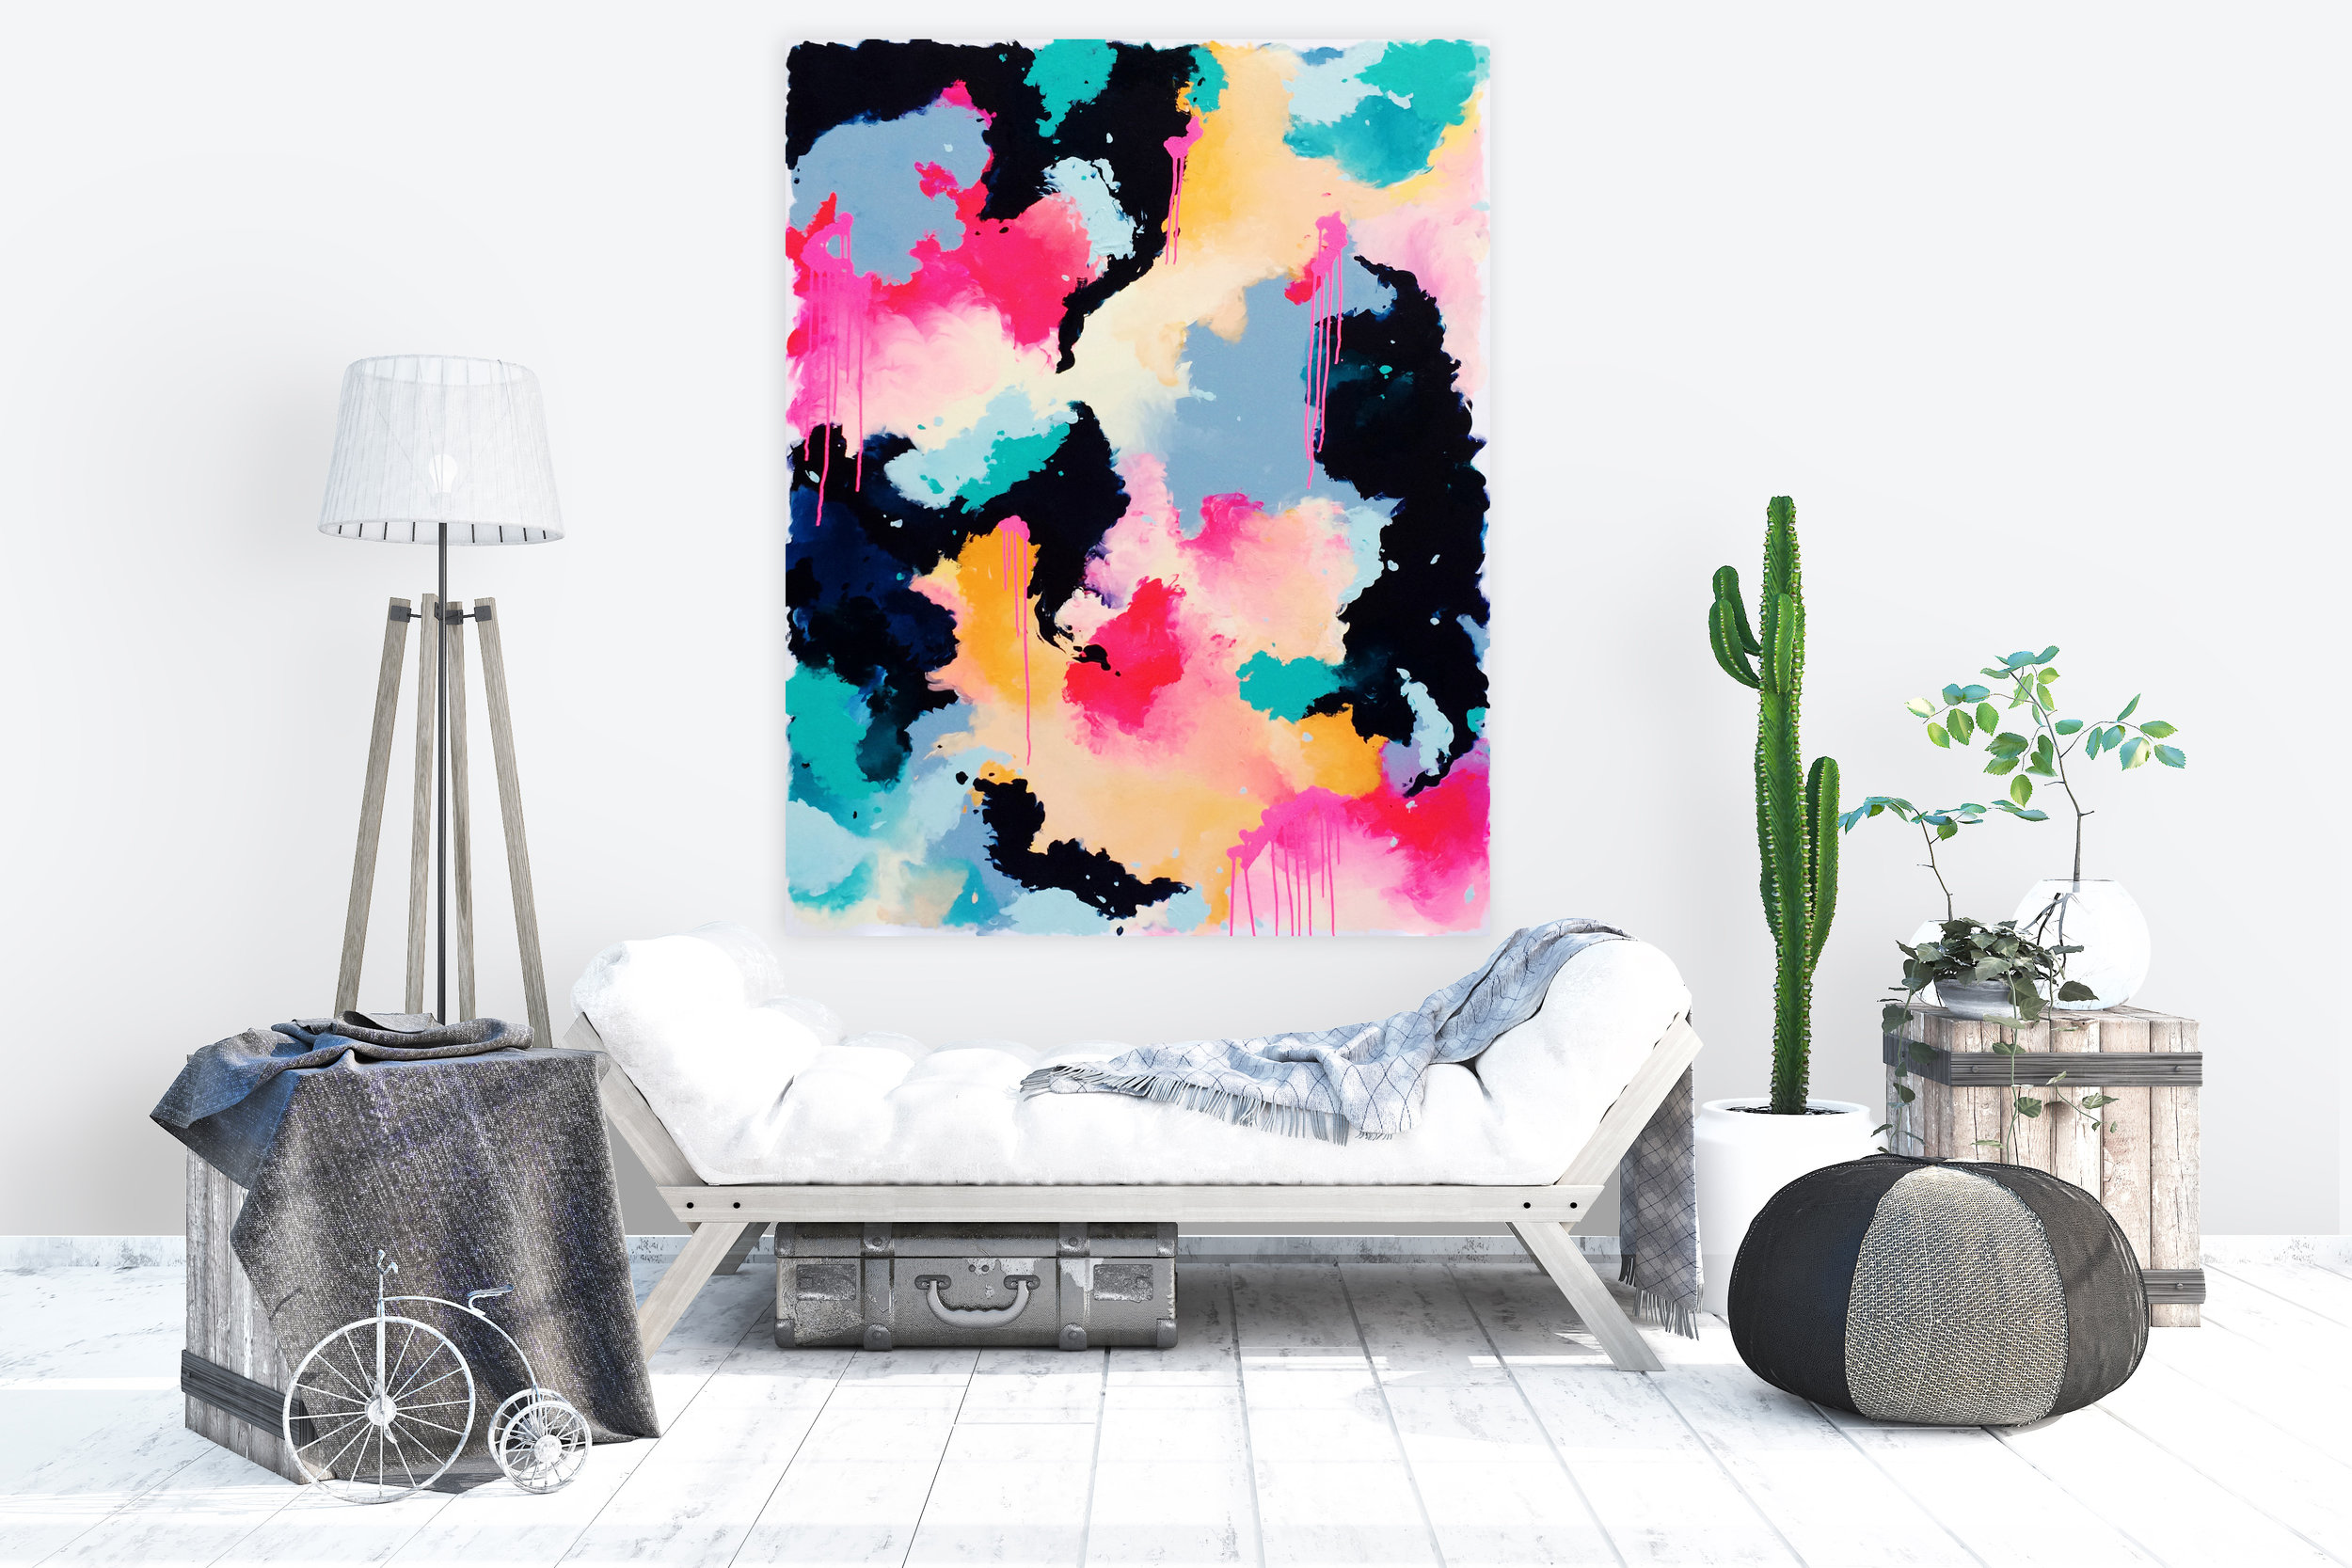 statement piece office art big canvas painting home living decor wall